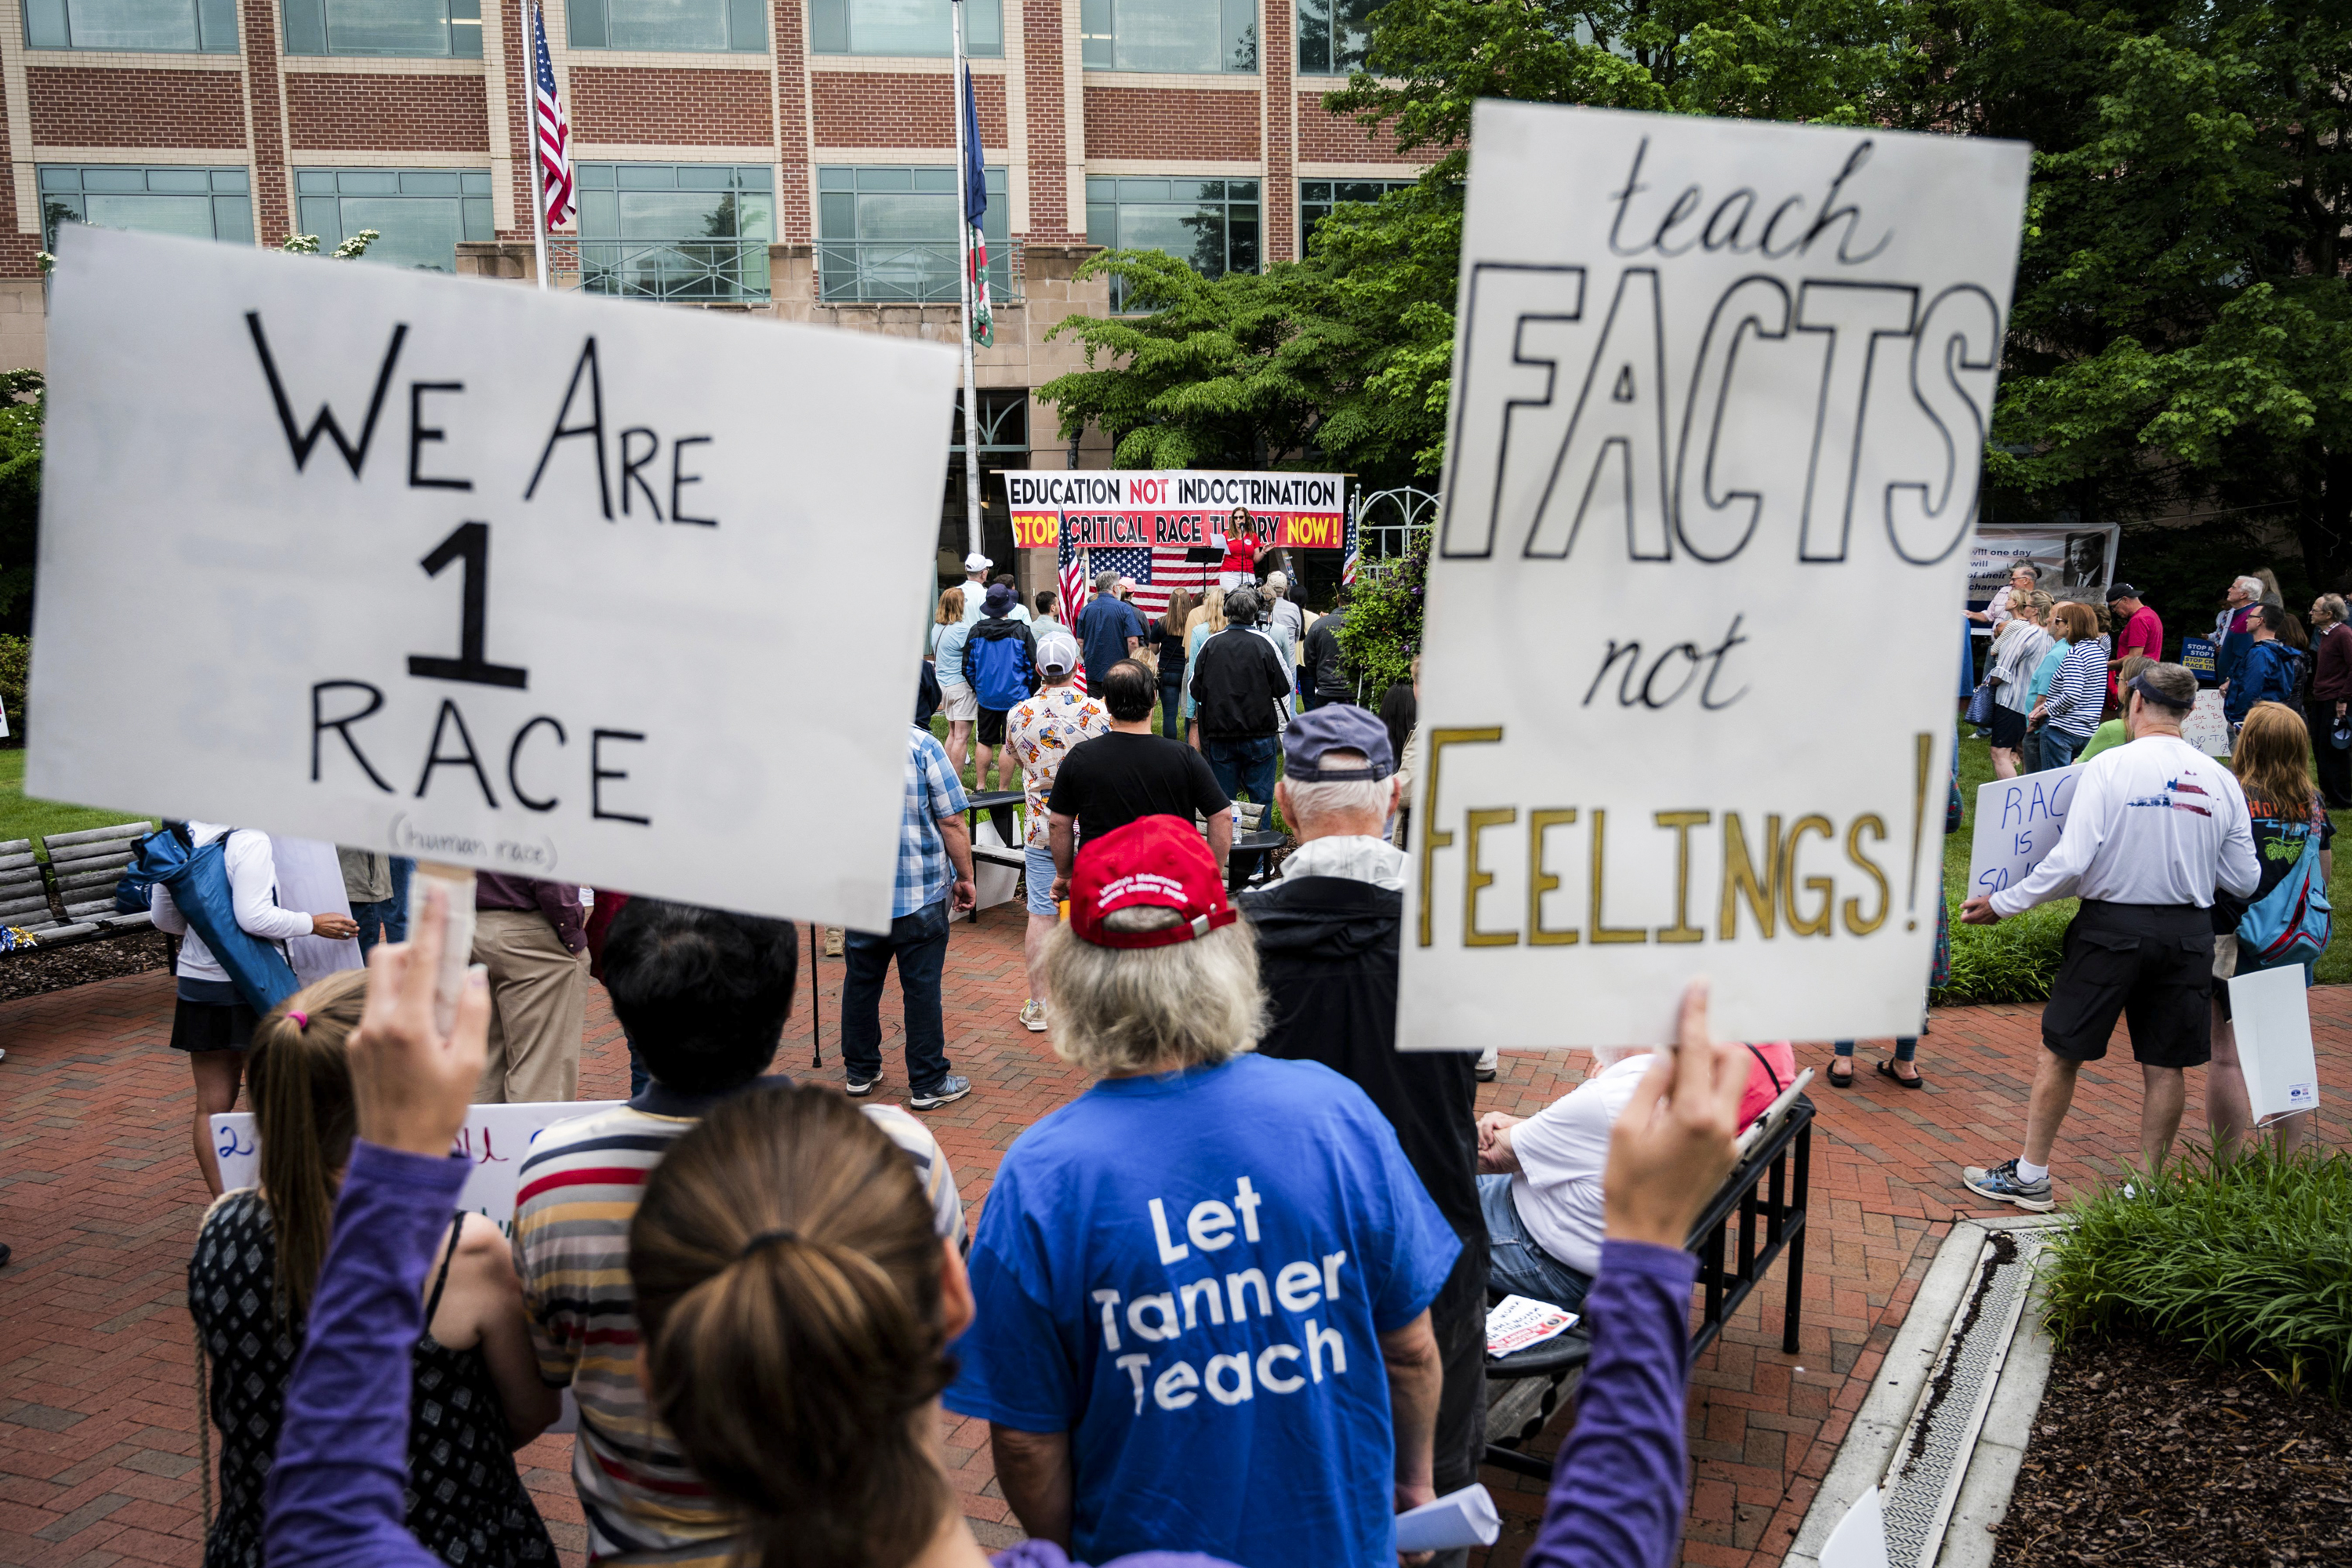 """A group of protesters outside a school hold signs reading """"teach facts, not feelings!"""" and """"We are 1 race."""""""